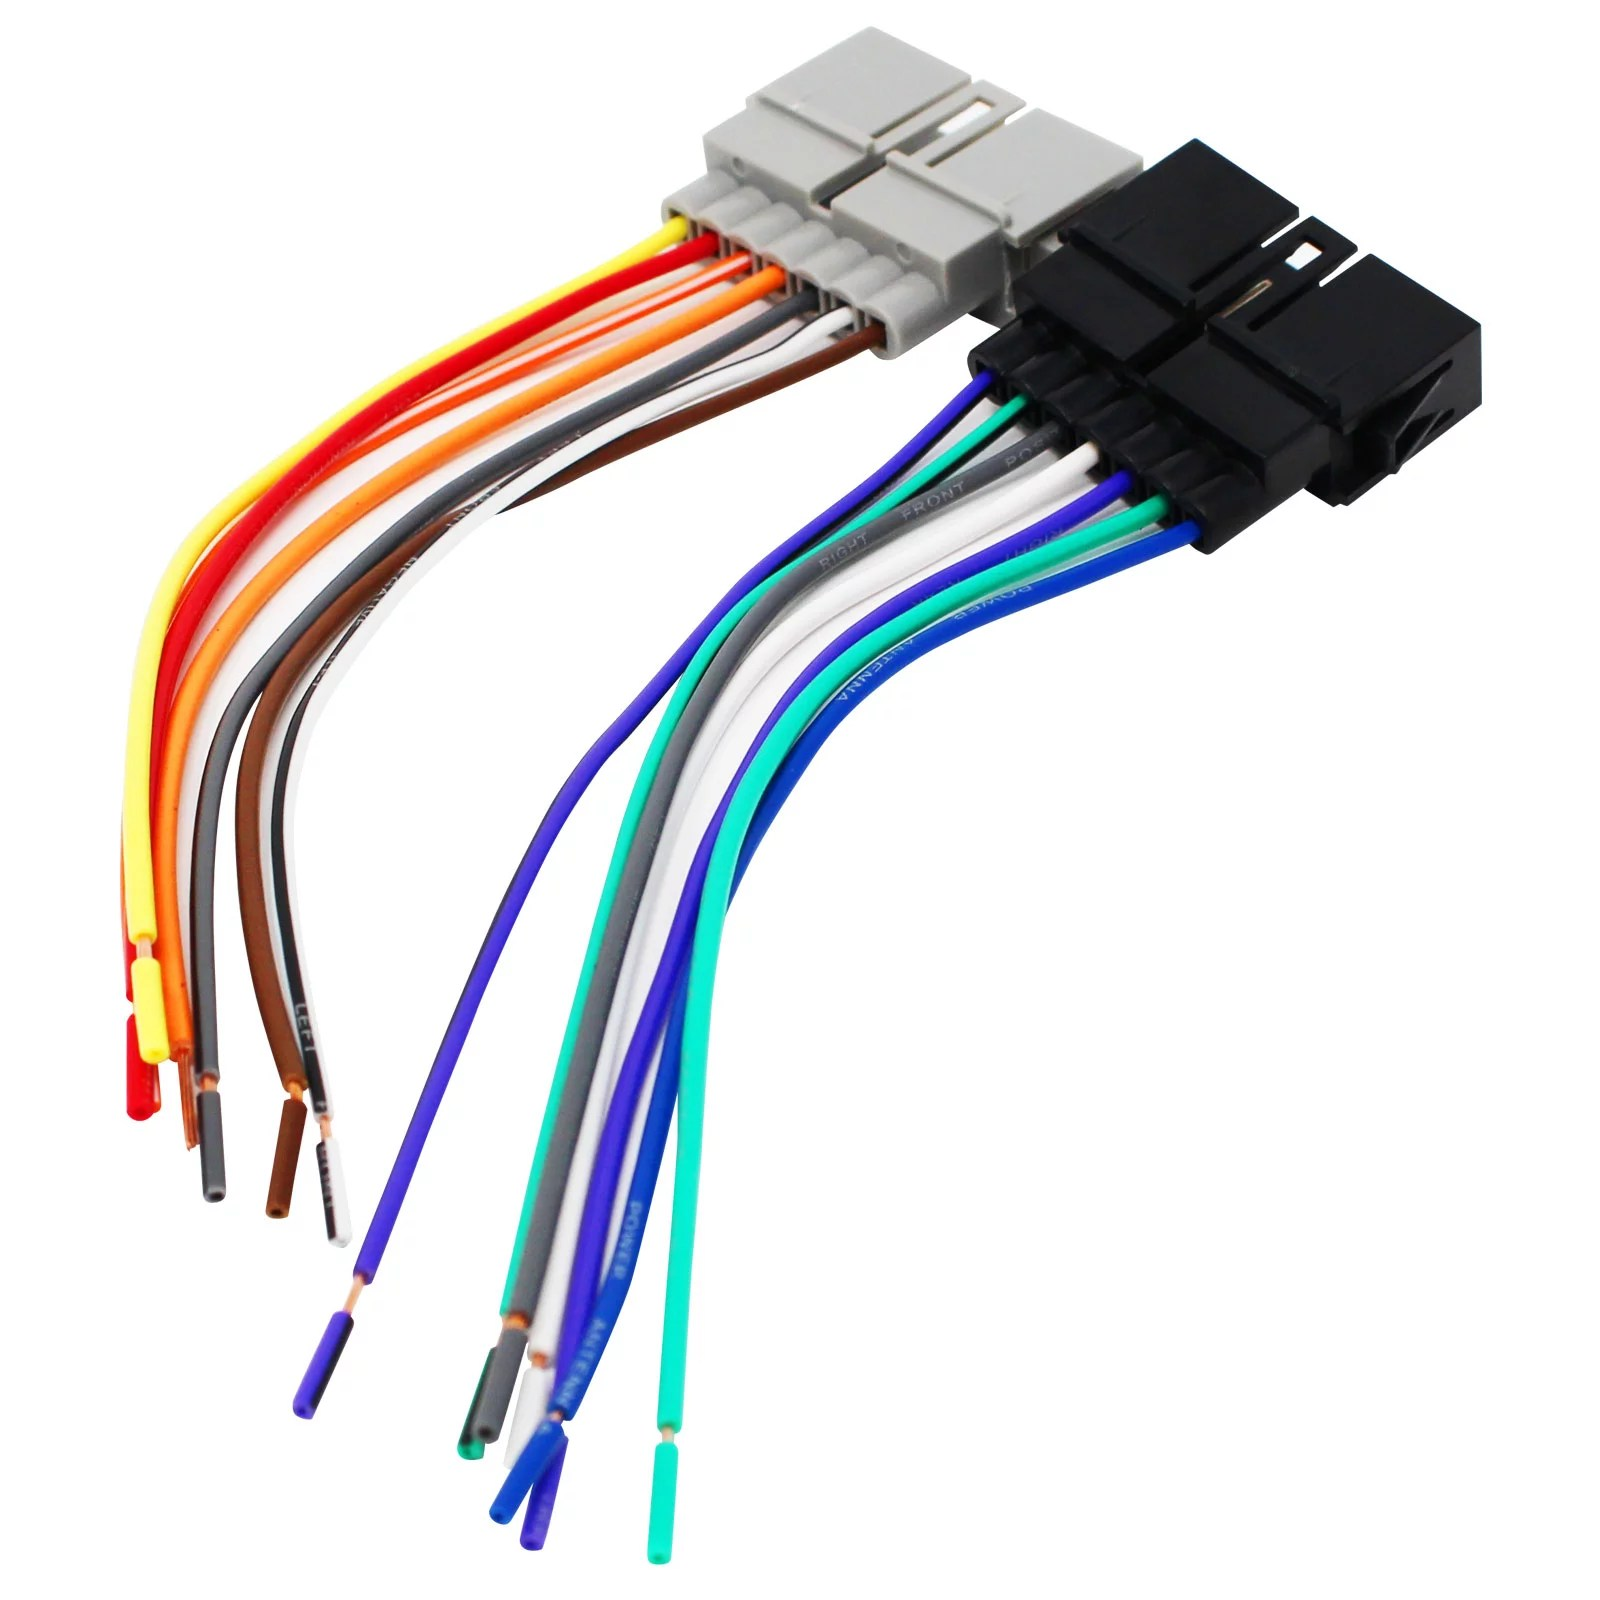 hight resolution of replacement radio wiring harness for 2001 dodge ram 1500 2000 dodge ram 1500 1999 dodge ram 1500 1998 dodge ram 1500 1997 dodge ram 1500 1996 dodge ram